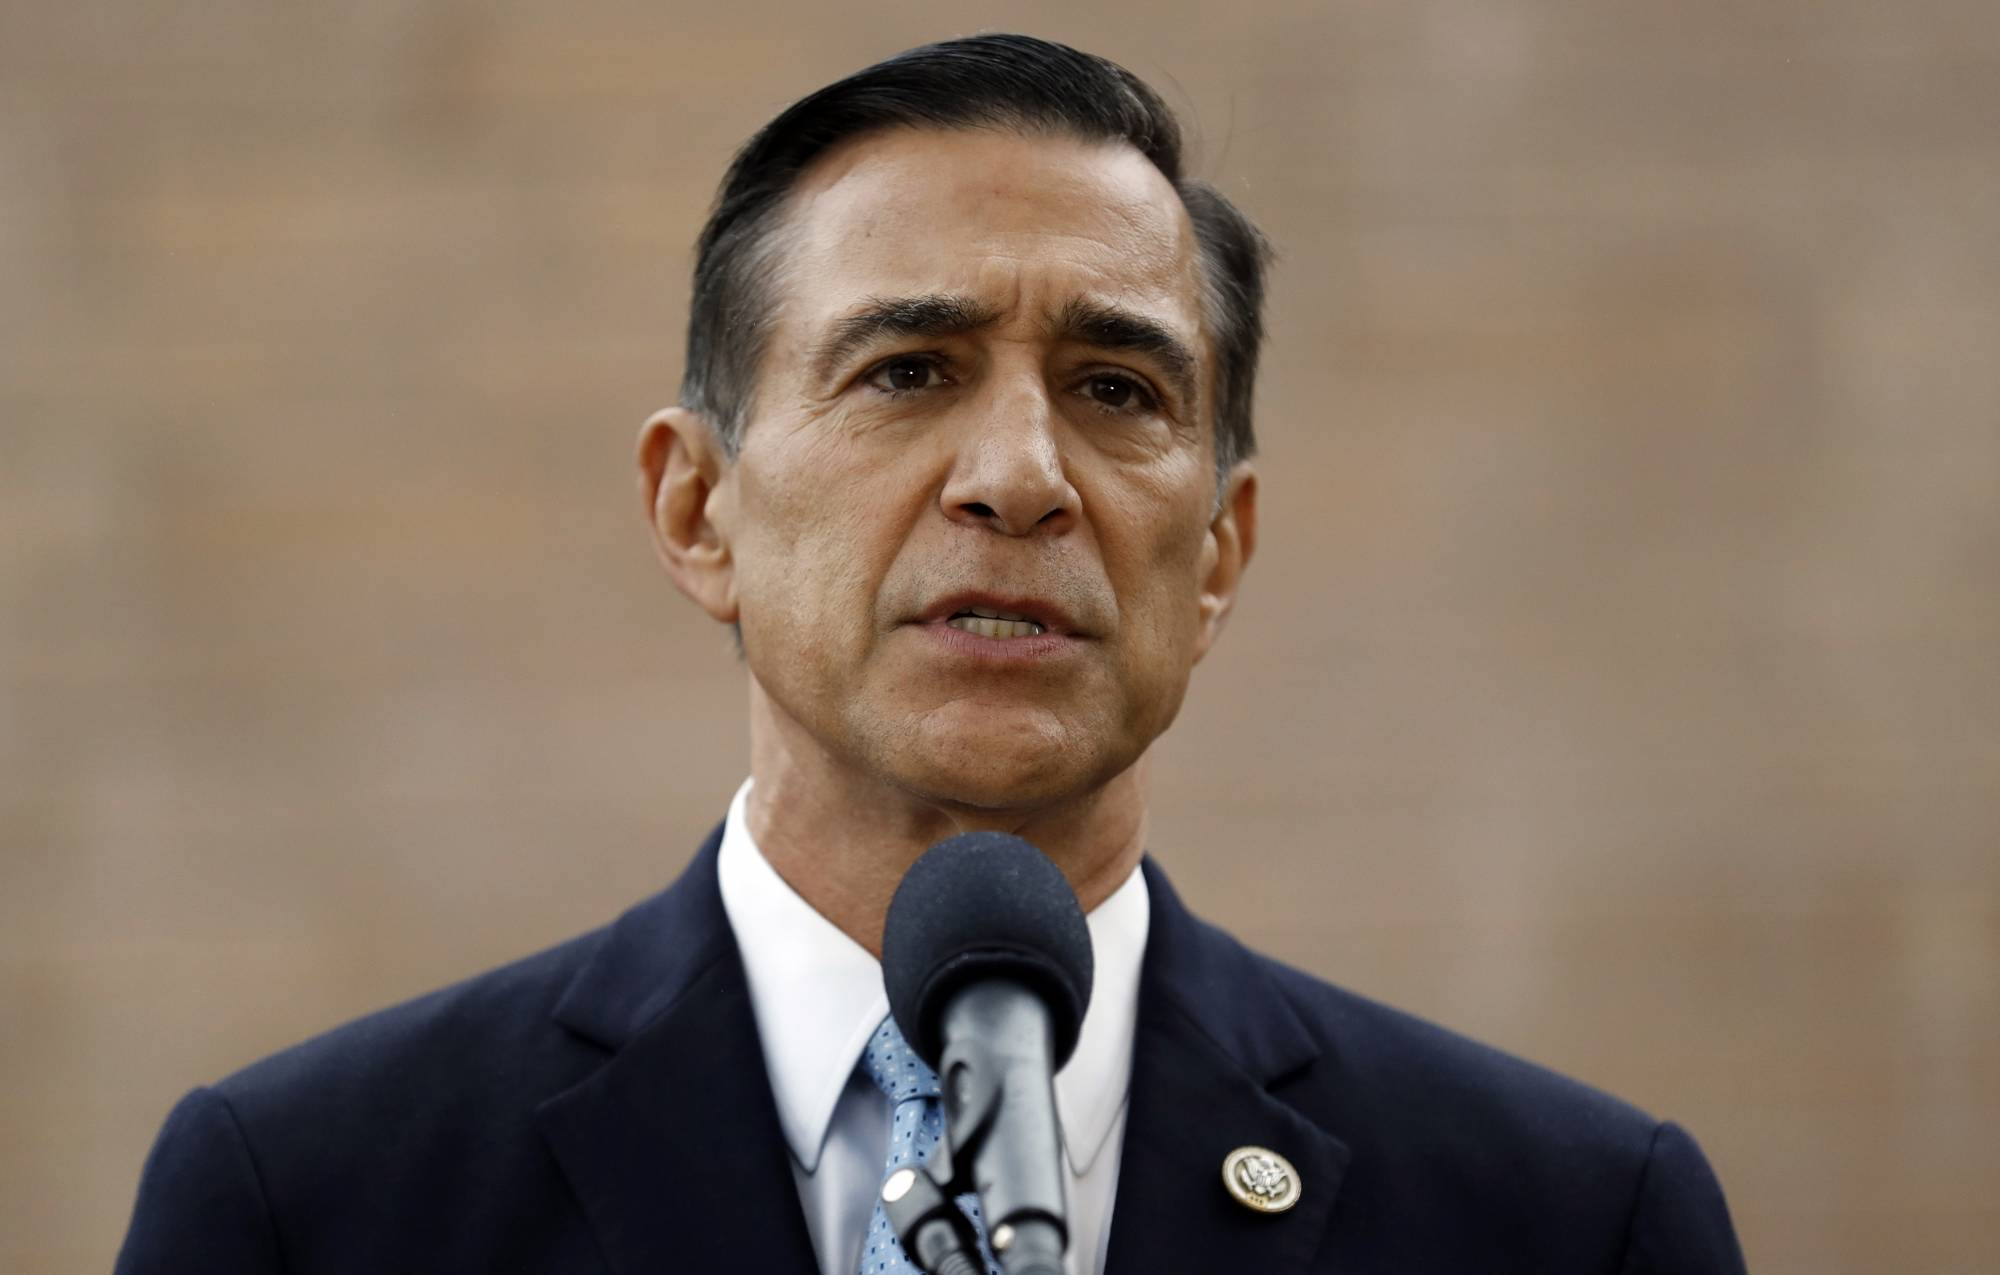 FILE - In this Sept. 26, 2019 file photo, former Republican congressman Darrell Issa speaks during a news conference in El Cajon, Calif. The race to fill the vacated seat of former Republican U.S. Rep. Duncan Hunter of Californiahas turned into a GOP slugfest. Hunter held one of the party's few remaining House seats in California before he pleaded guilty to a corruption charge and resigned last month. The race to replace him has been especially bitter between the Republican front-runners, former congressman Issa and San Diego radio host and political commentator Carl DeMaio. (AP Photo/Gregory Bull, File)